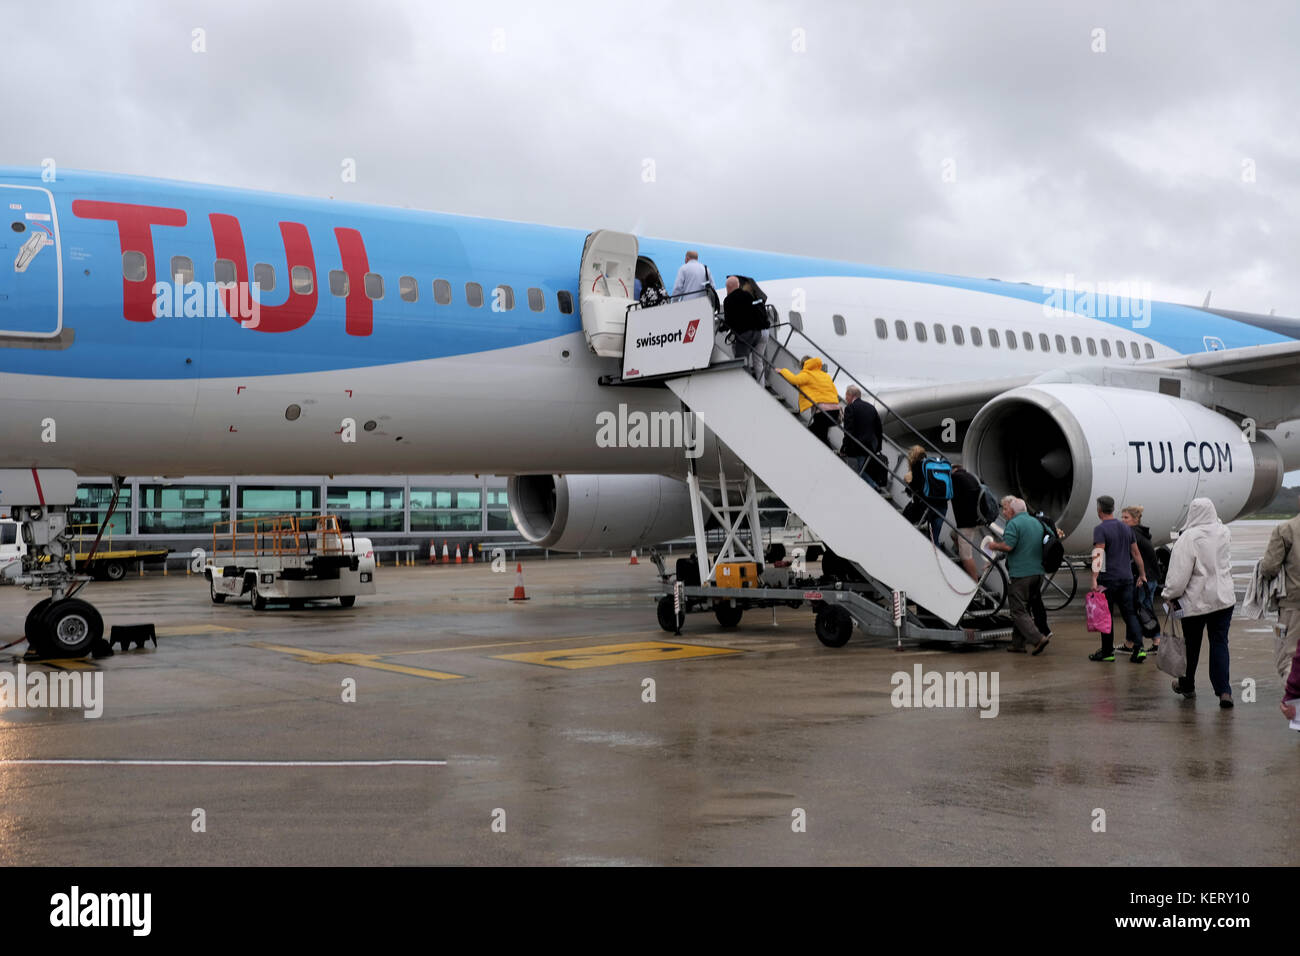 A TUI aircraft standing on the airport apron at Bristol airport in the rain. The aircraft is being boarded by passengers - Stock Image